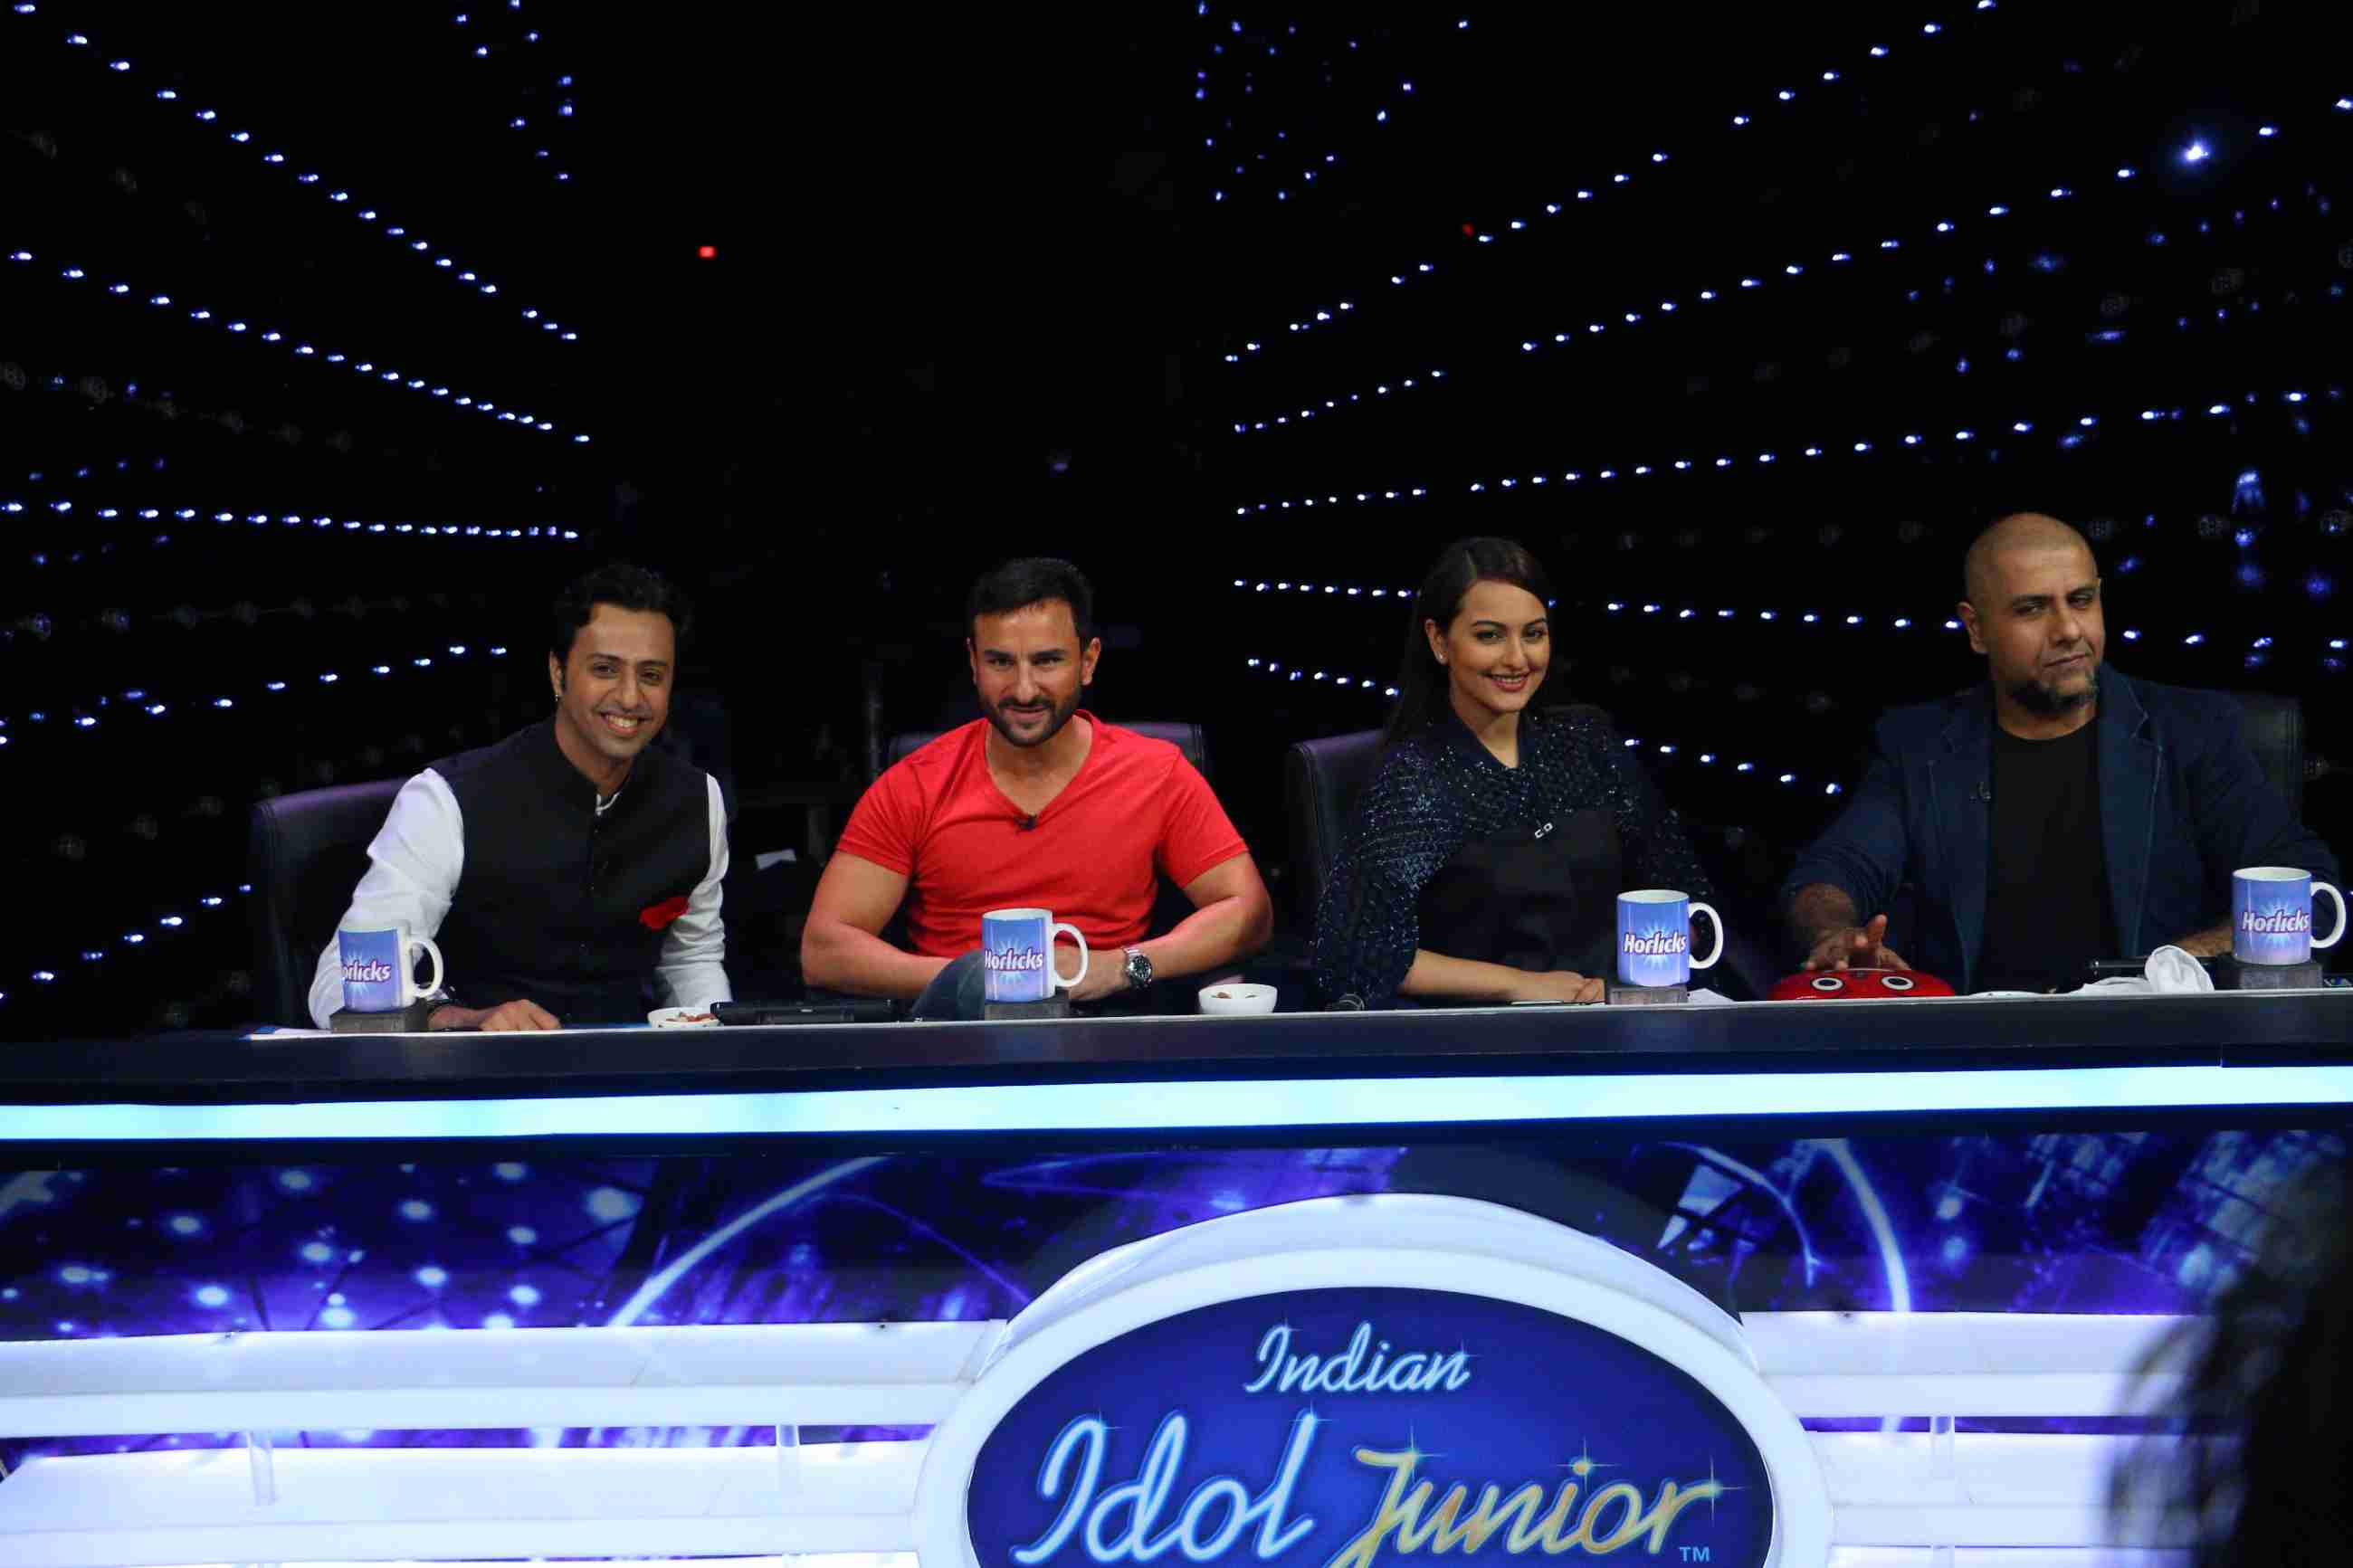 Phantom : Saif Ali Khan & Katrina Kaif On The Sets Of Indian Idol Junior